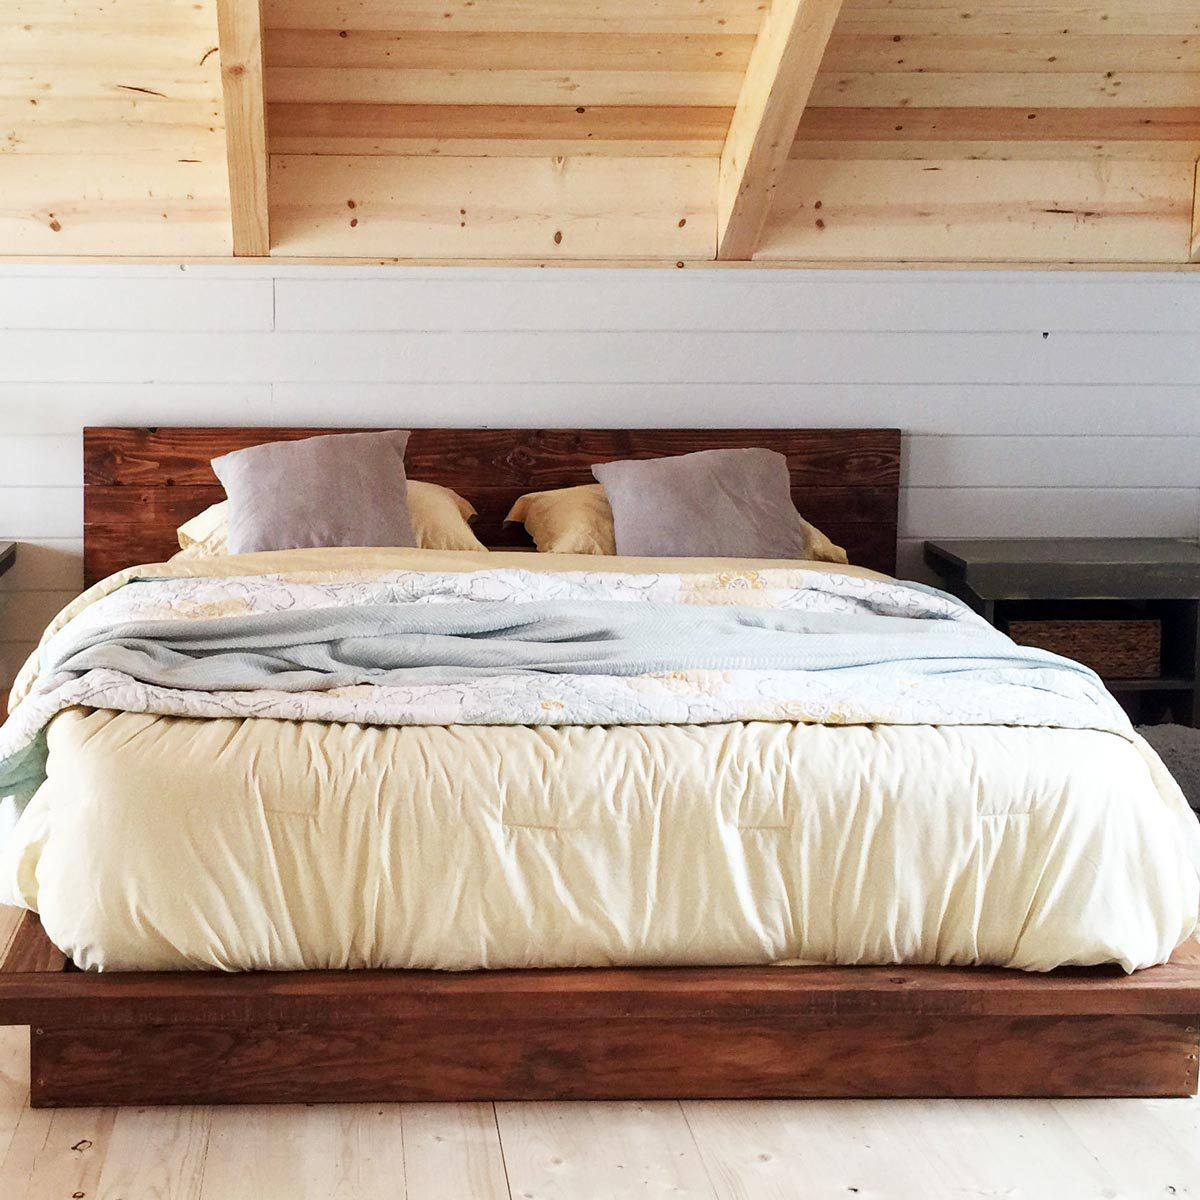 10 Awesome Diy Platform Bed Designs The Family Handyman